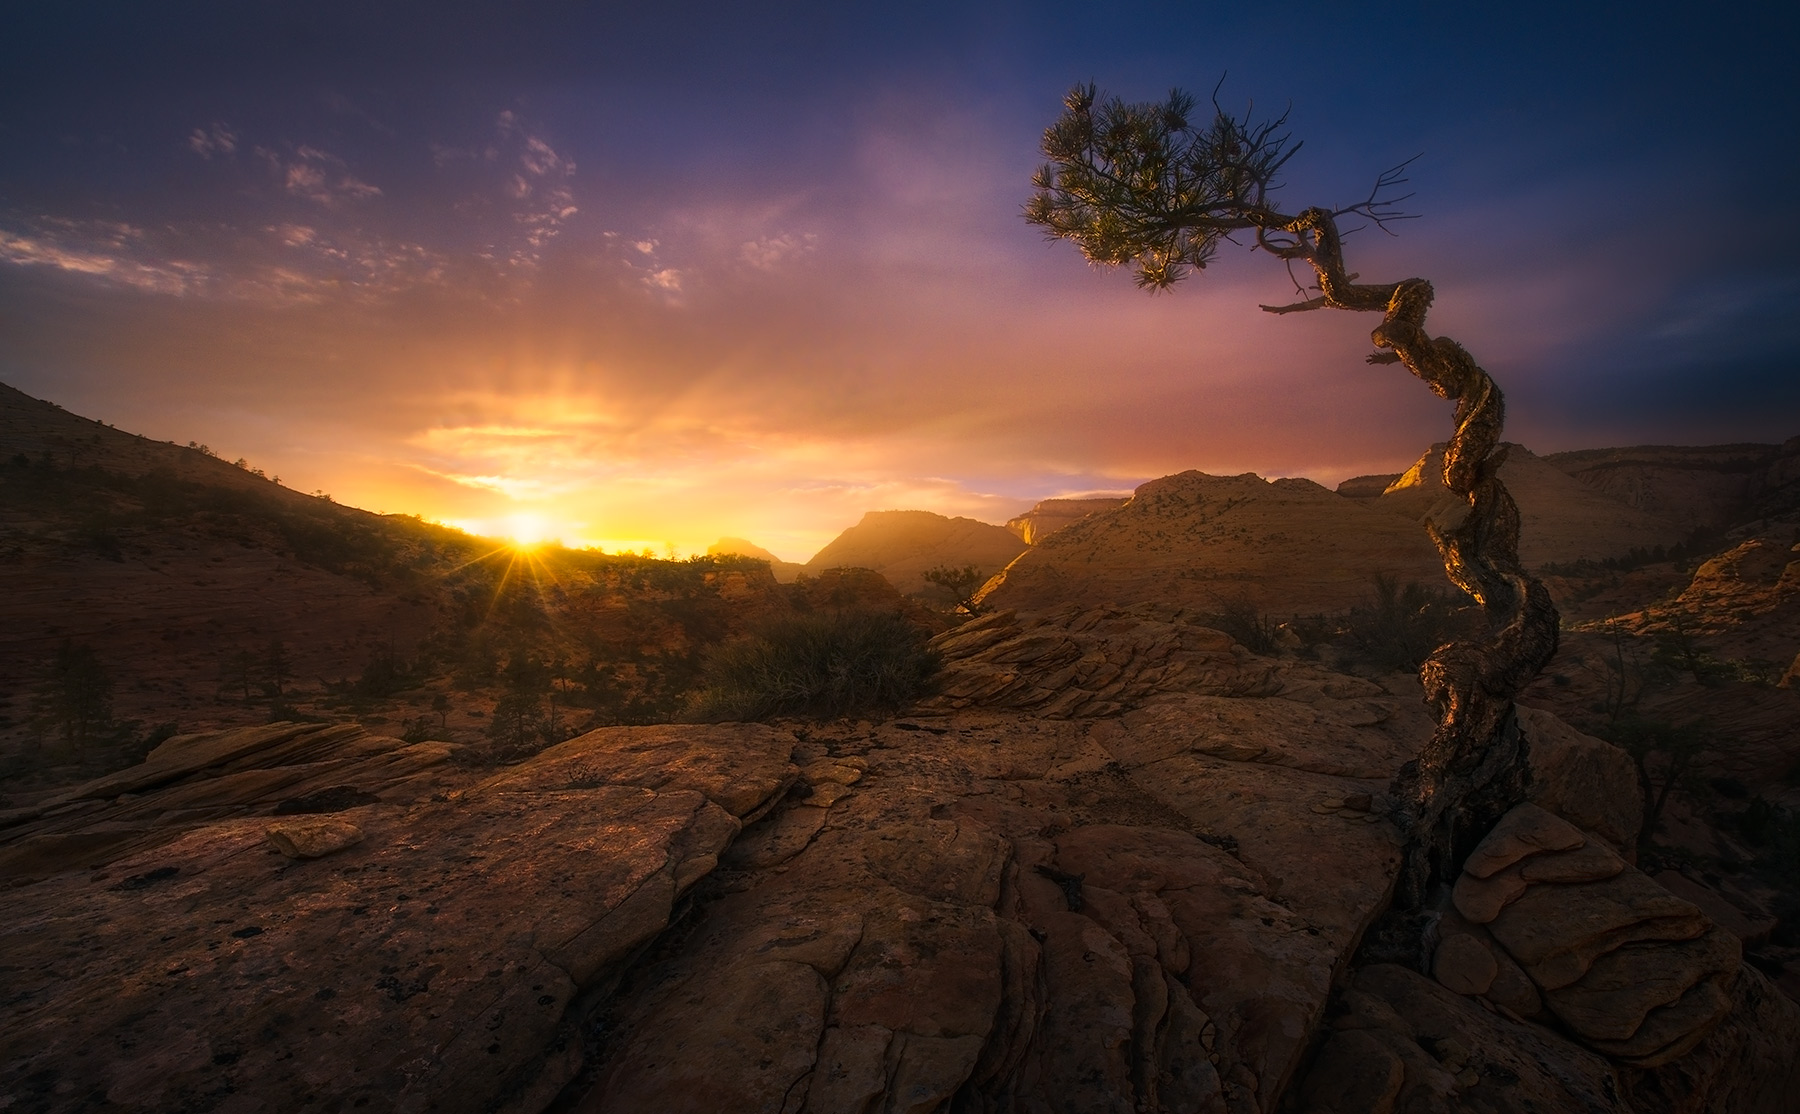 Zion, Tree, Lonely, Sunset, Sandstone, photo